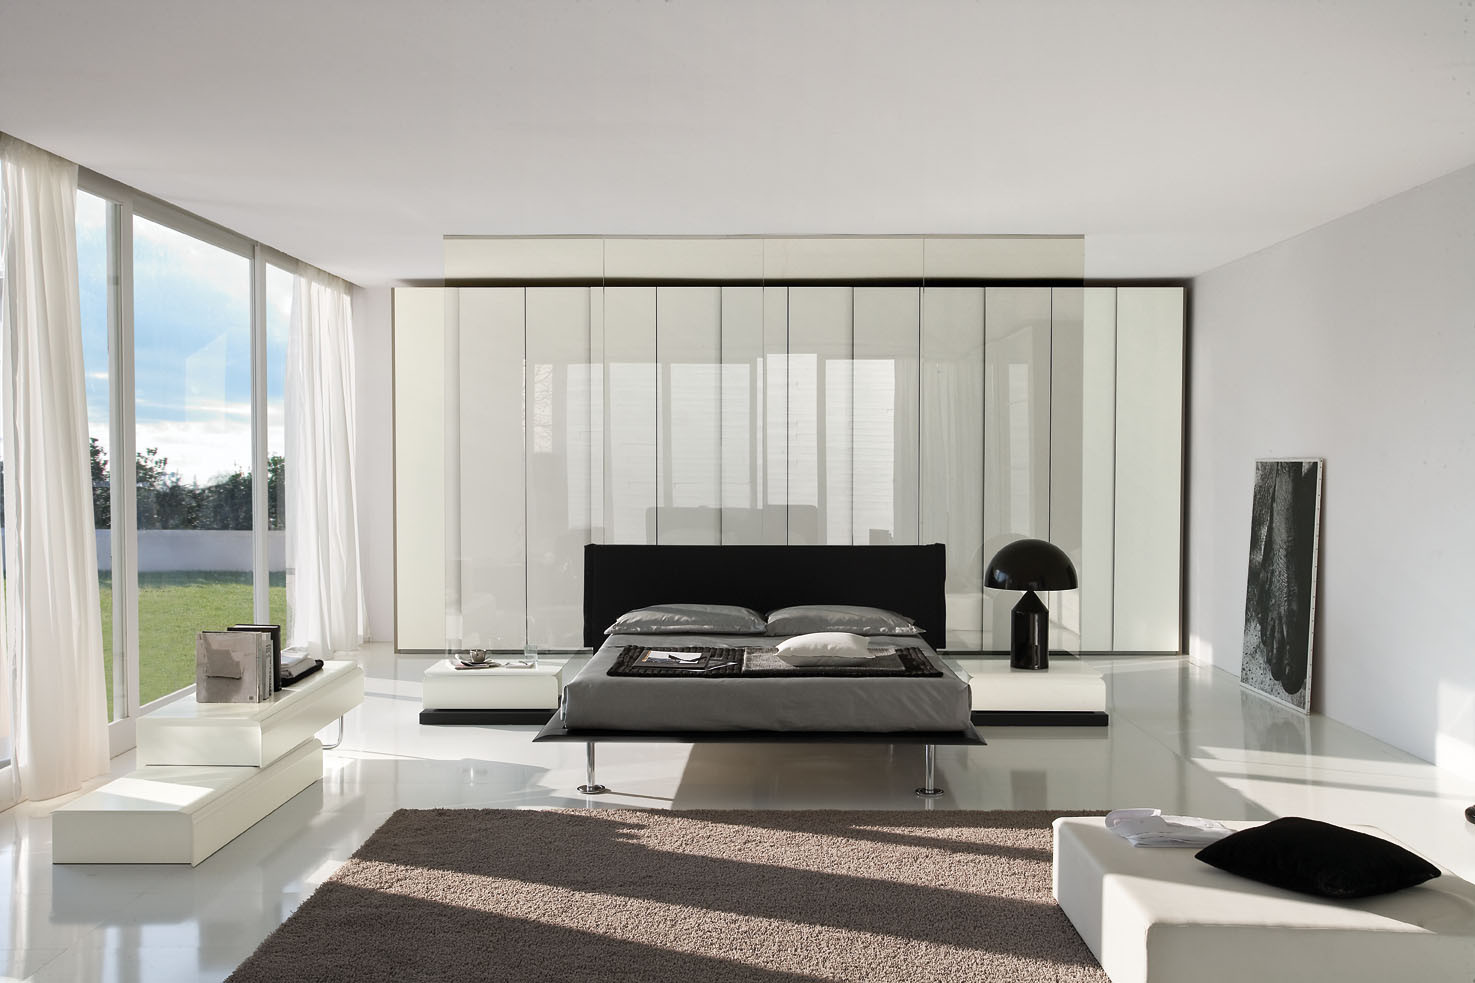 Best ideas about Bedroom Furniture Ideas . Save or Pin 20 Contemporary Bedroom Furniture Ideas Decoholic Now.